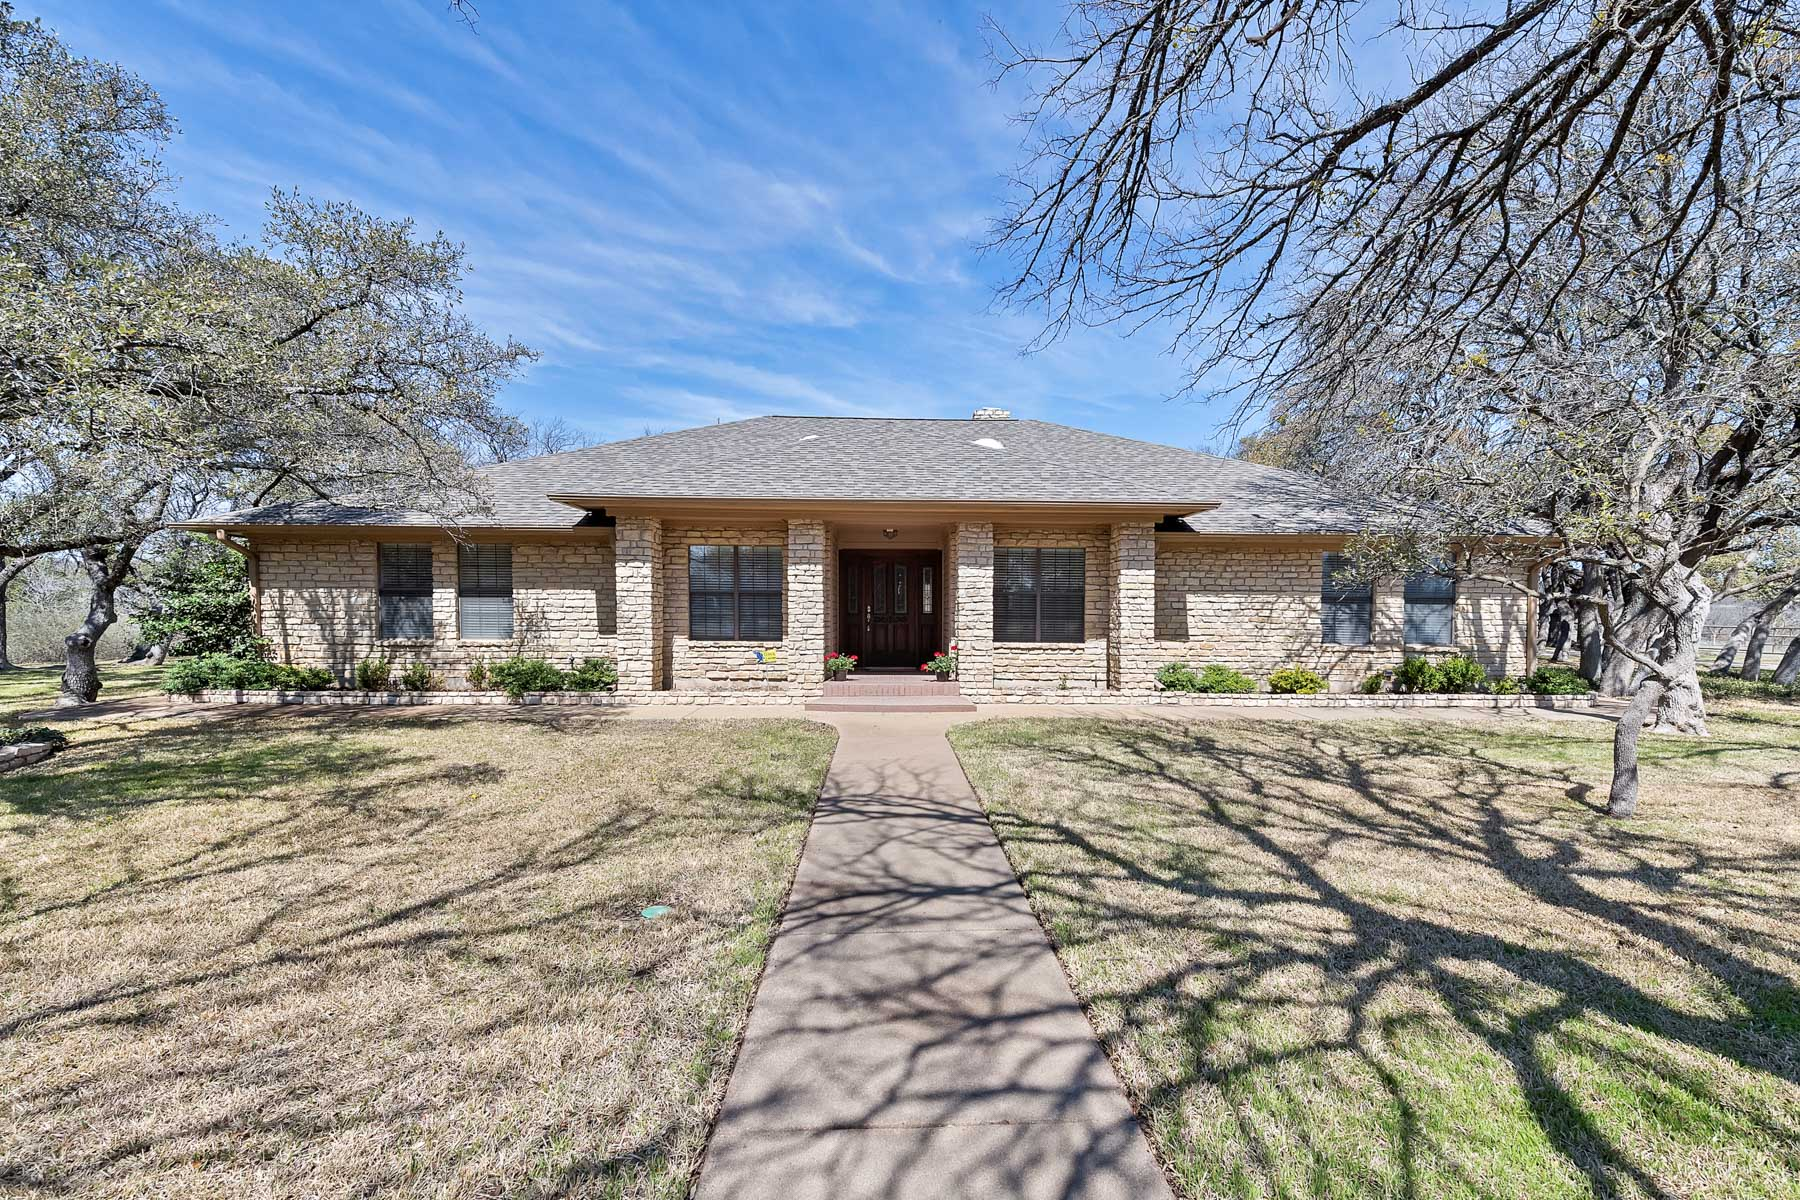 Traditional, West Fork Addition 9400 Boat Club Road Fort Worth, Texas 76179